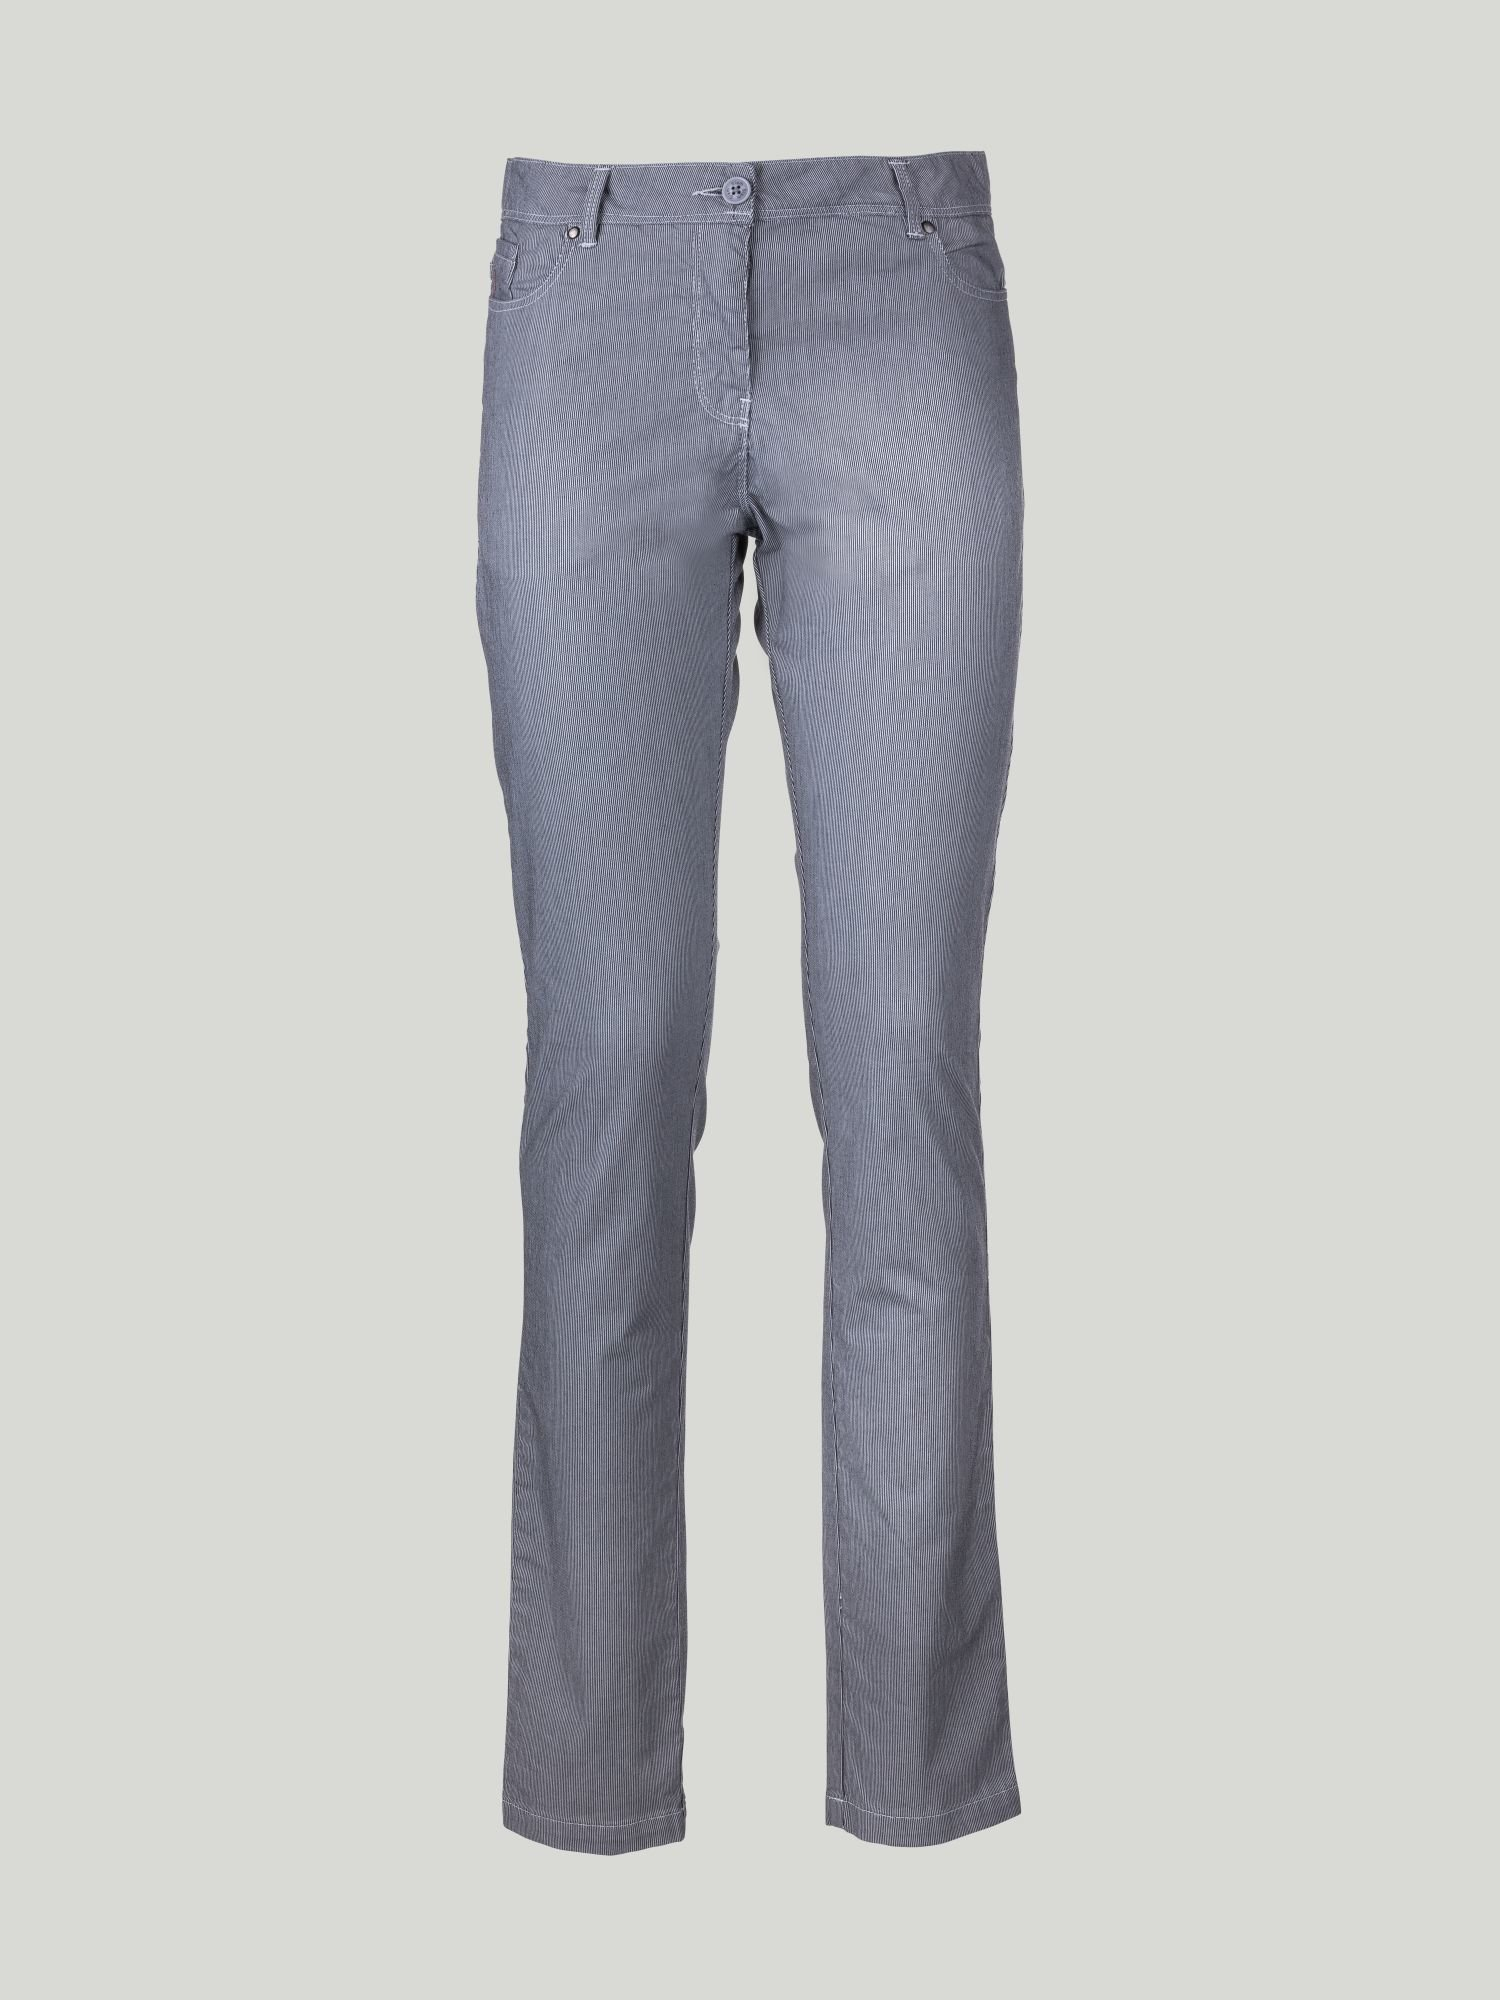 C66 Trousers - Navy / White